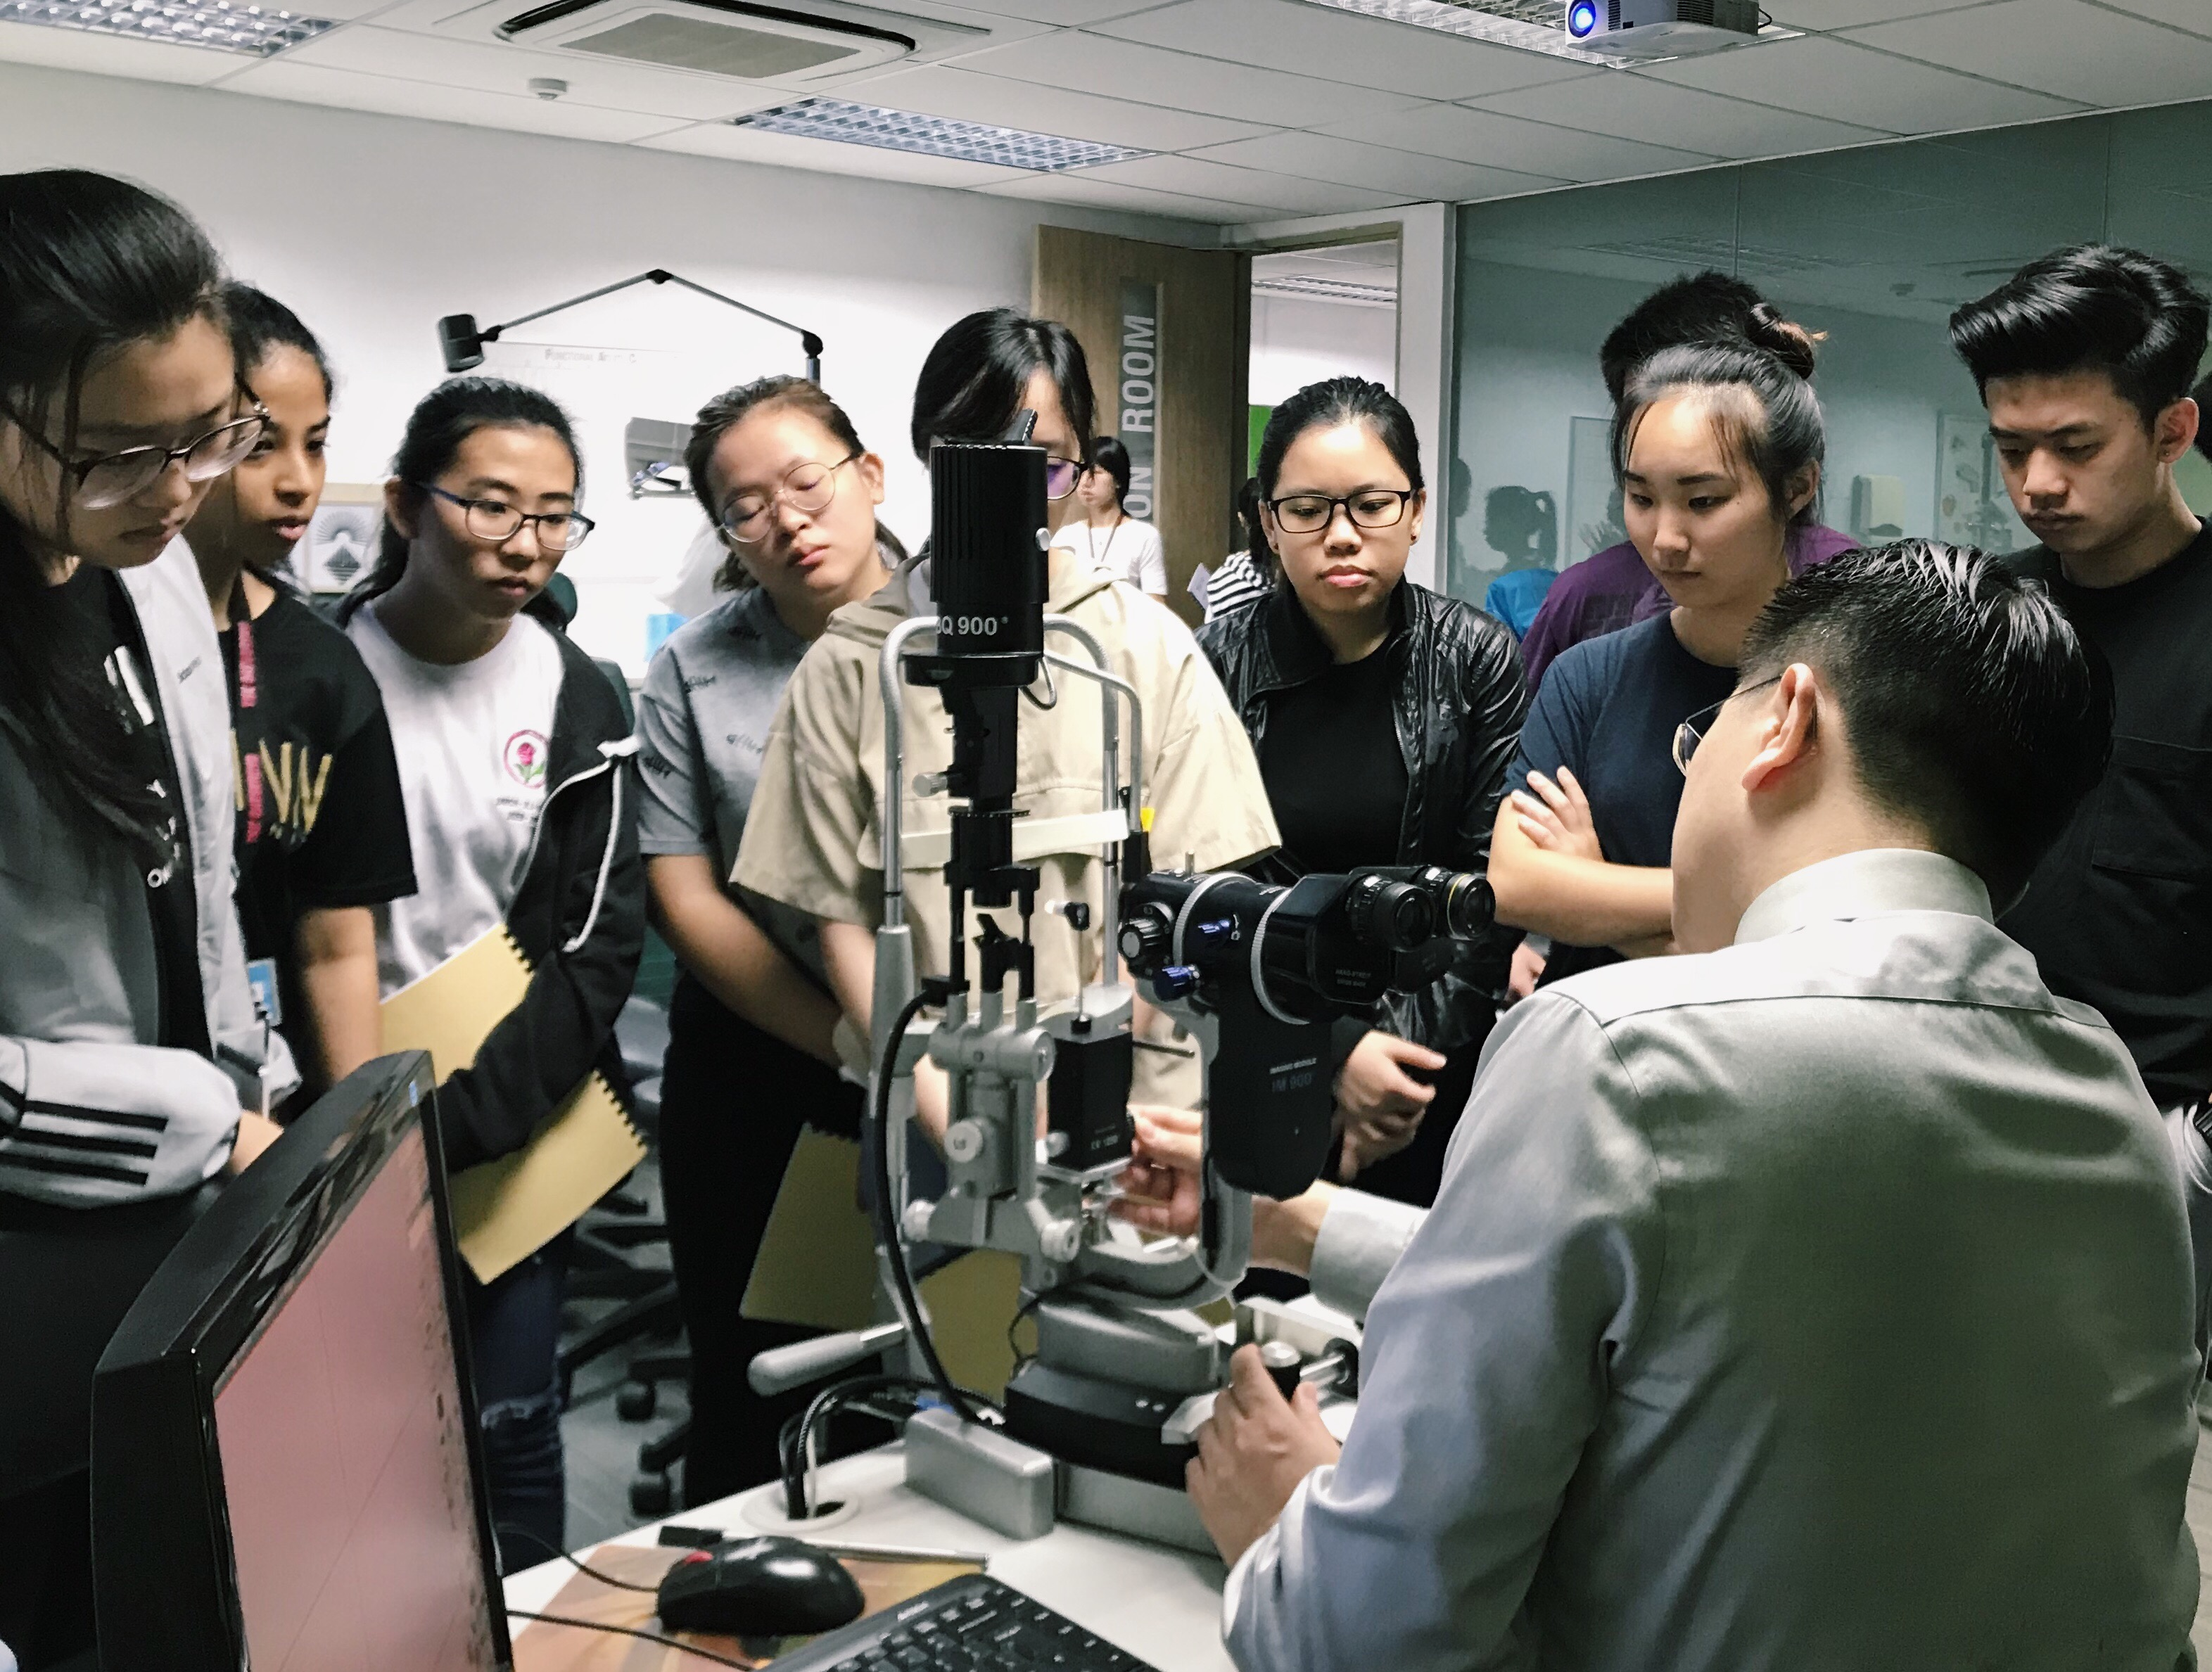 Dr Au Eong Kah Guan (seated) explaining the use of Goldmann applanation tonometer to first year optometry students at Ngee Ann Polytechnic.